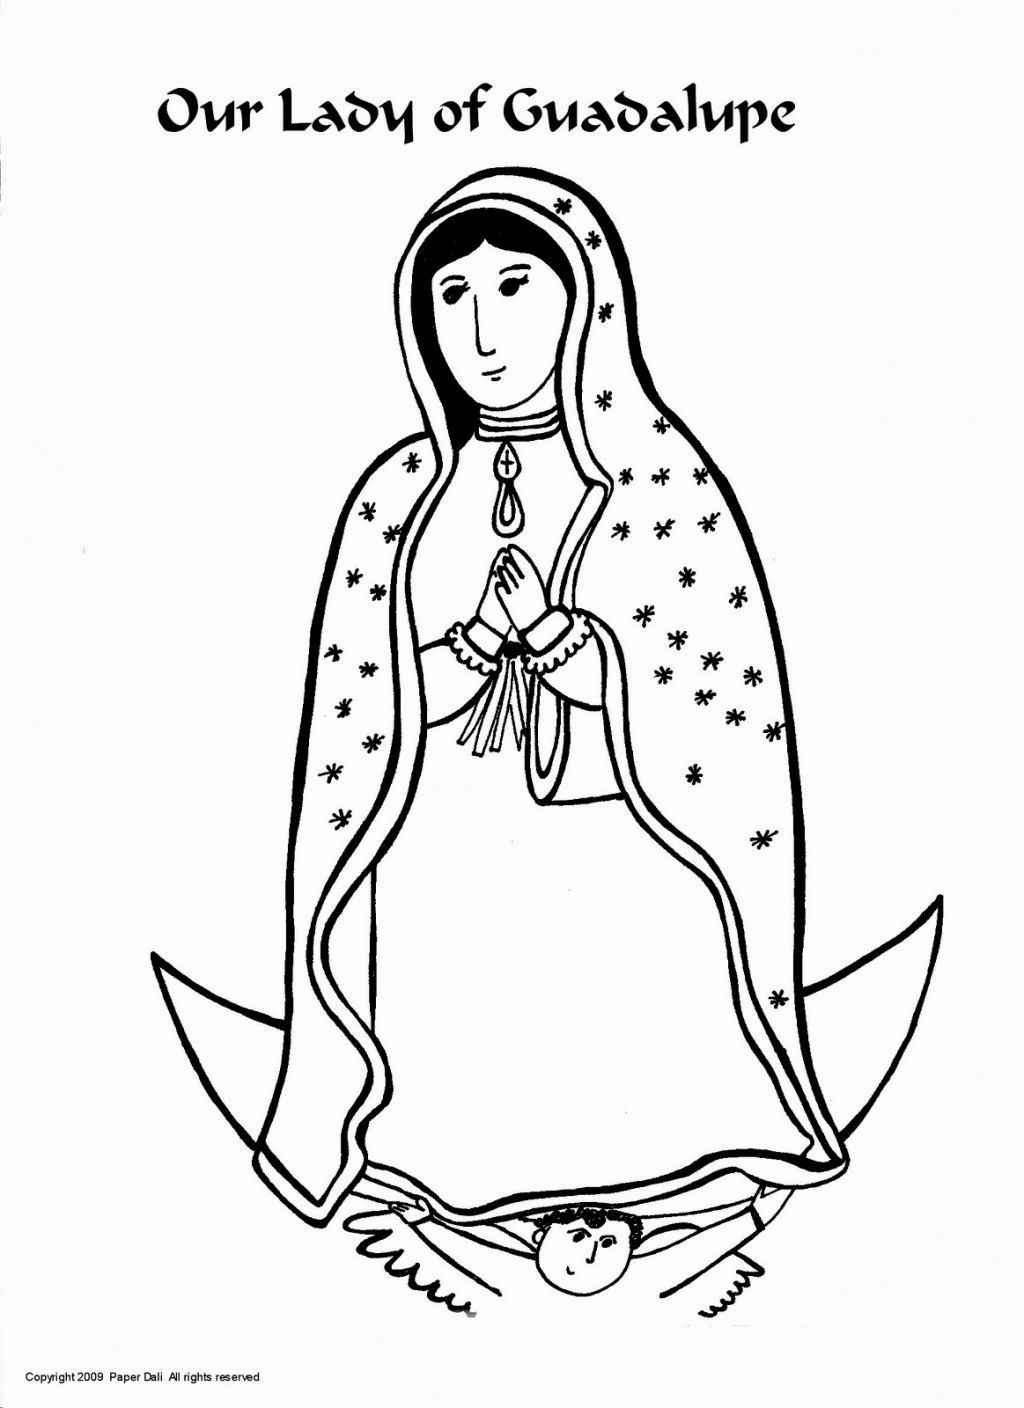 La Virgen De Guadalupe Coloring Pages | Coloring Pages | Pinterest ...